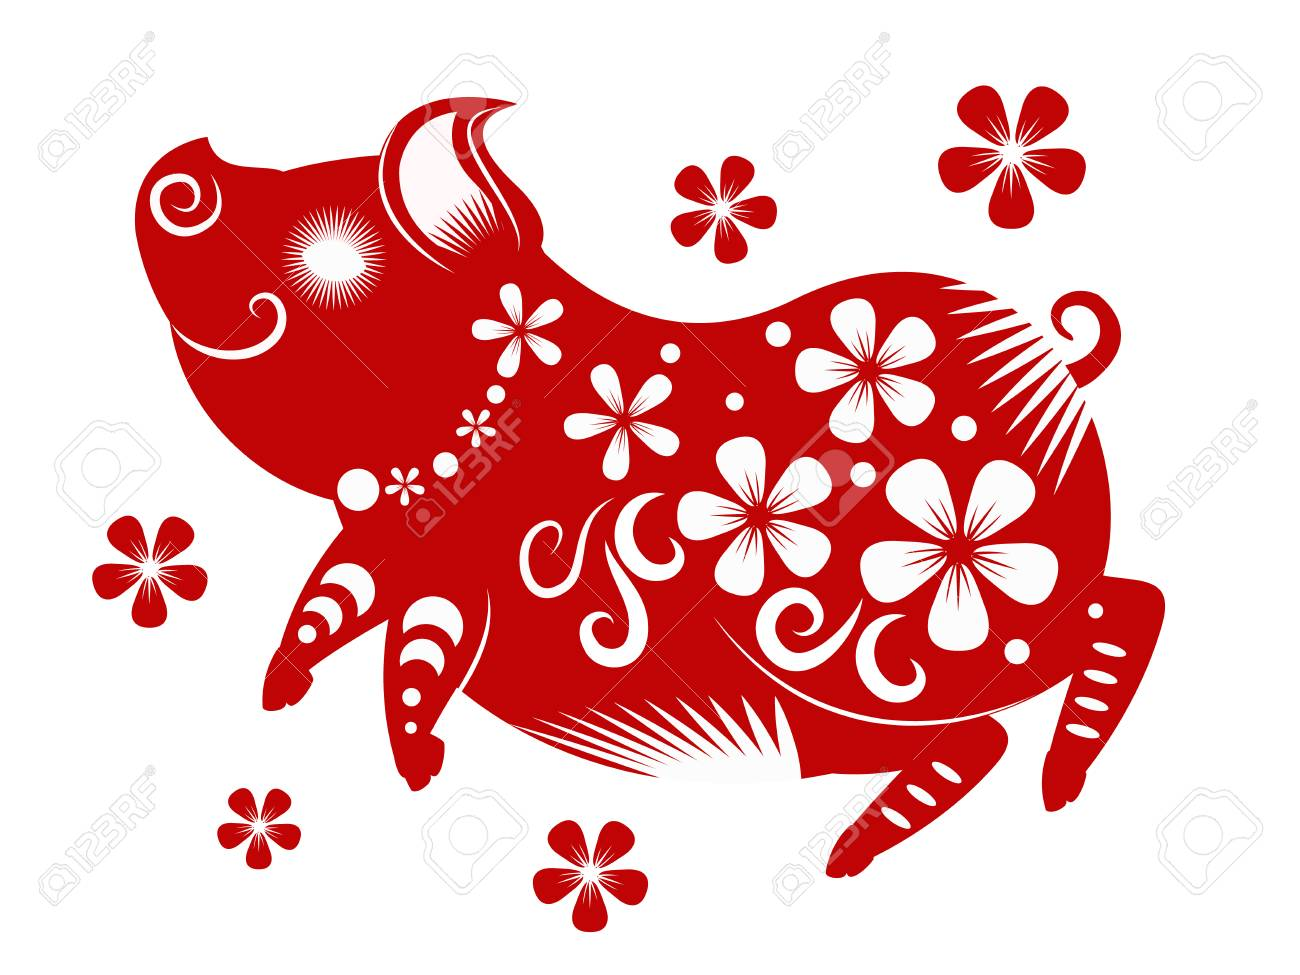 Happy chinese new year 2019. Year of the pig. vector illustration..